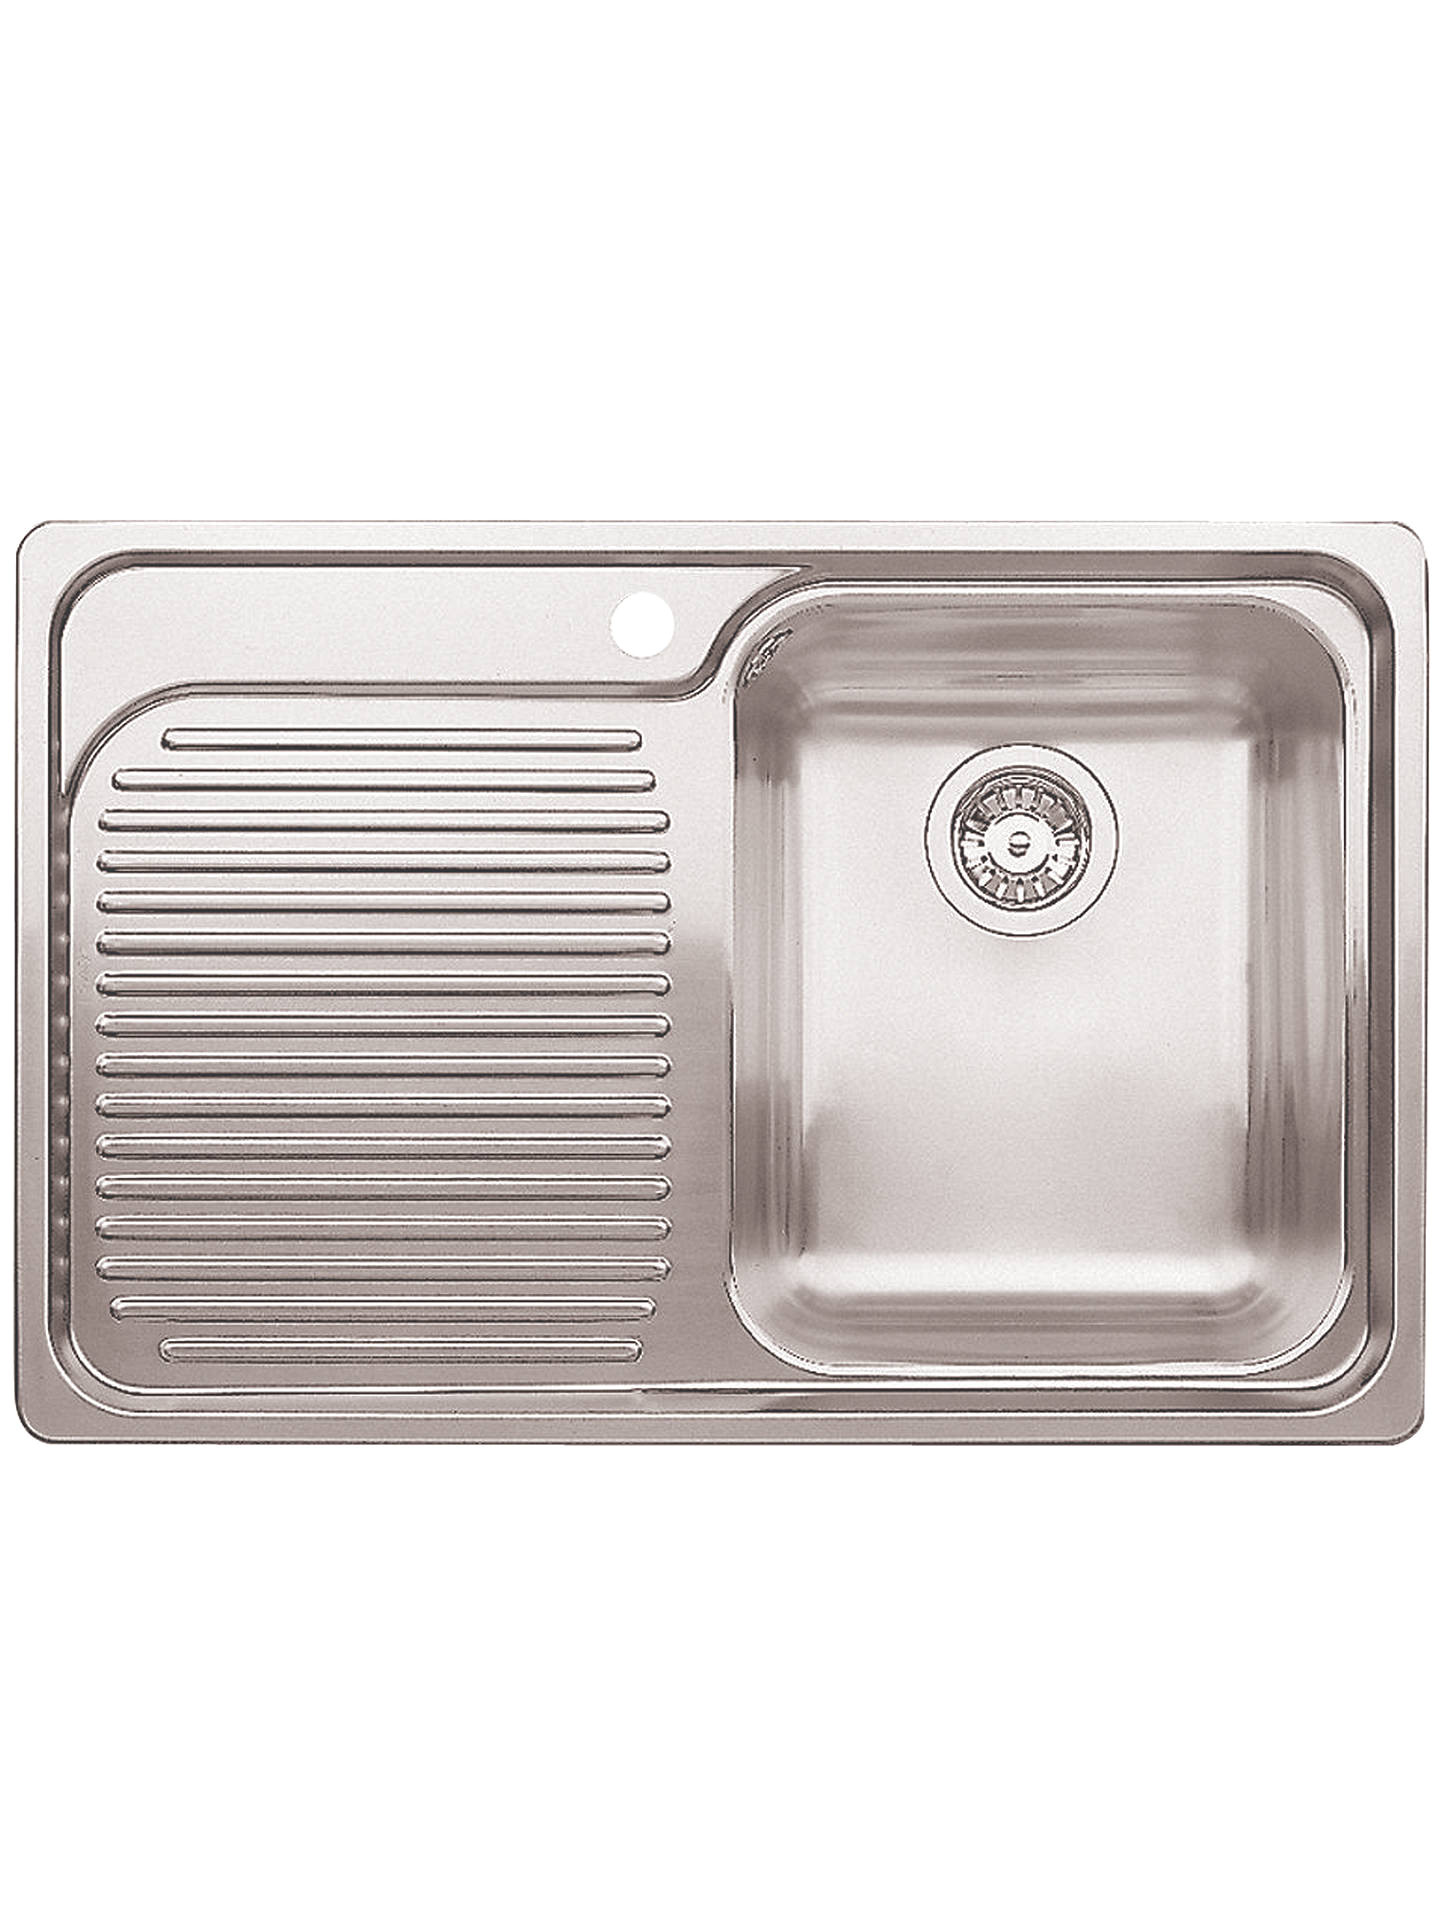 buyblanco classic 4s single inset kitchen sink with right hand bowl stainless steel online at